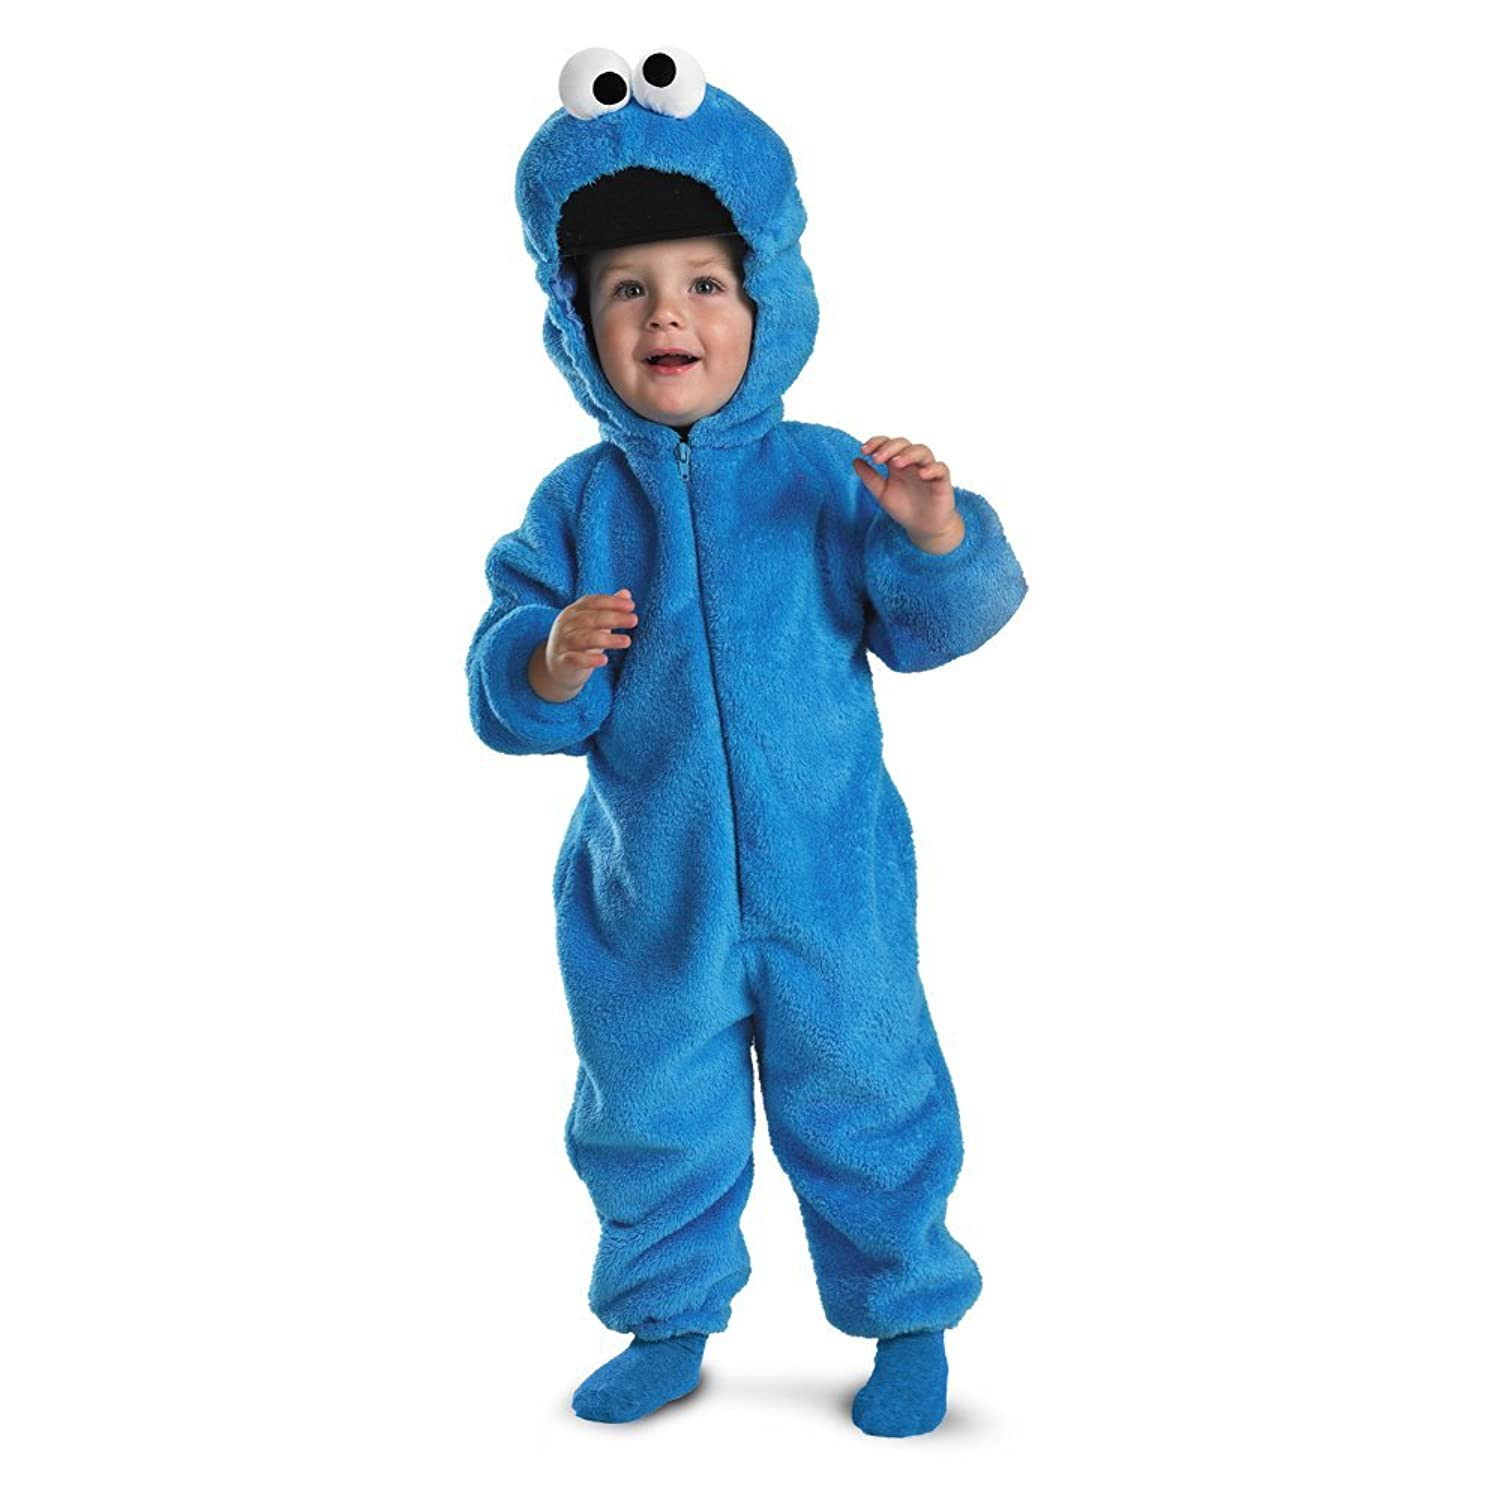 amazoncom sesame street baby cookie monster plush costume clothing - Baby Monster Halloween Costumes